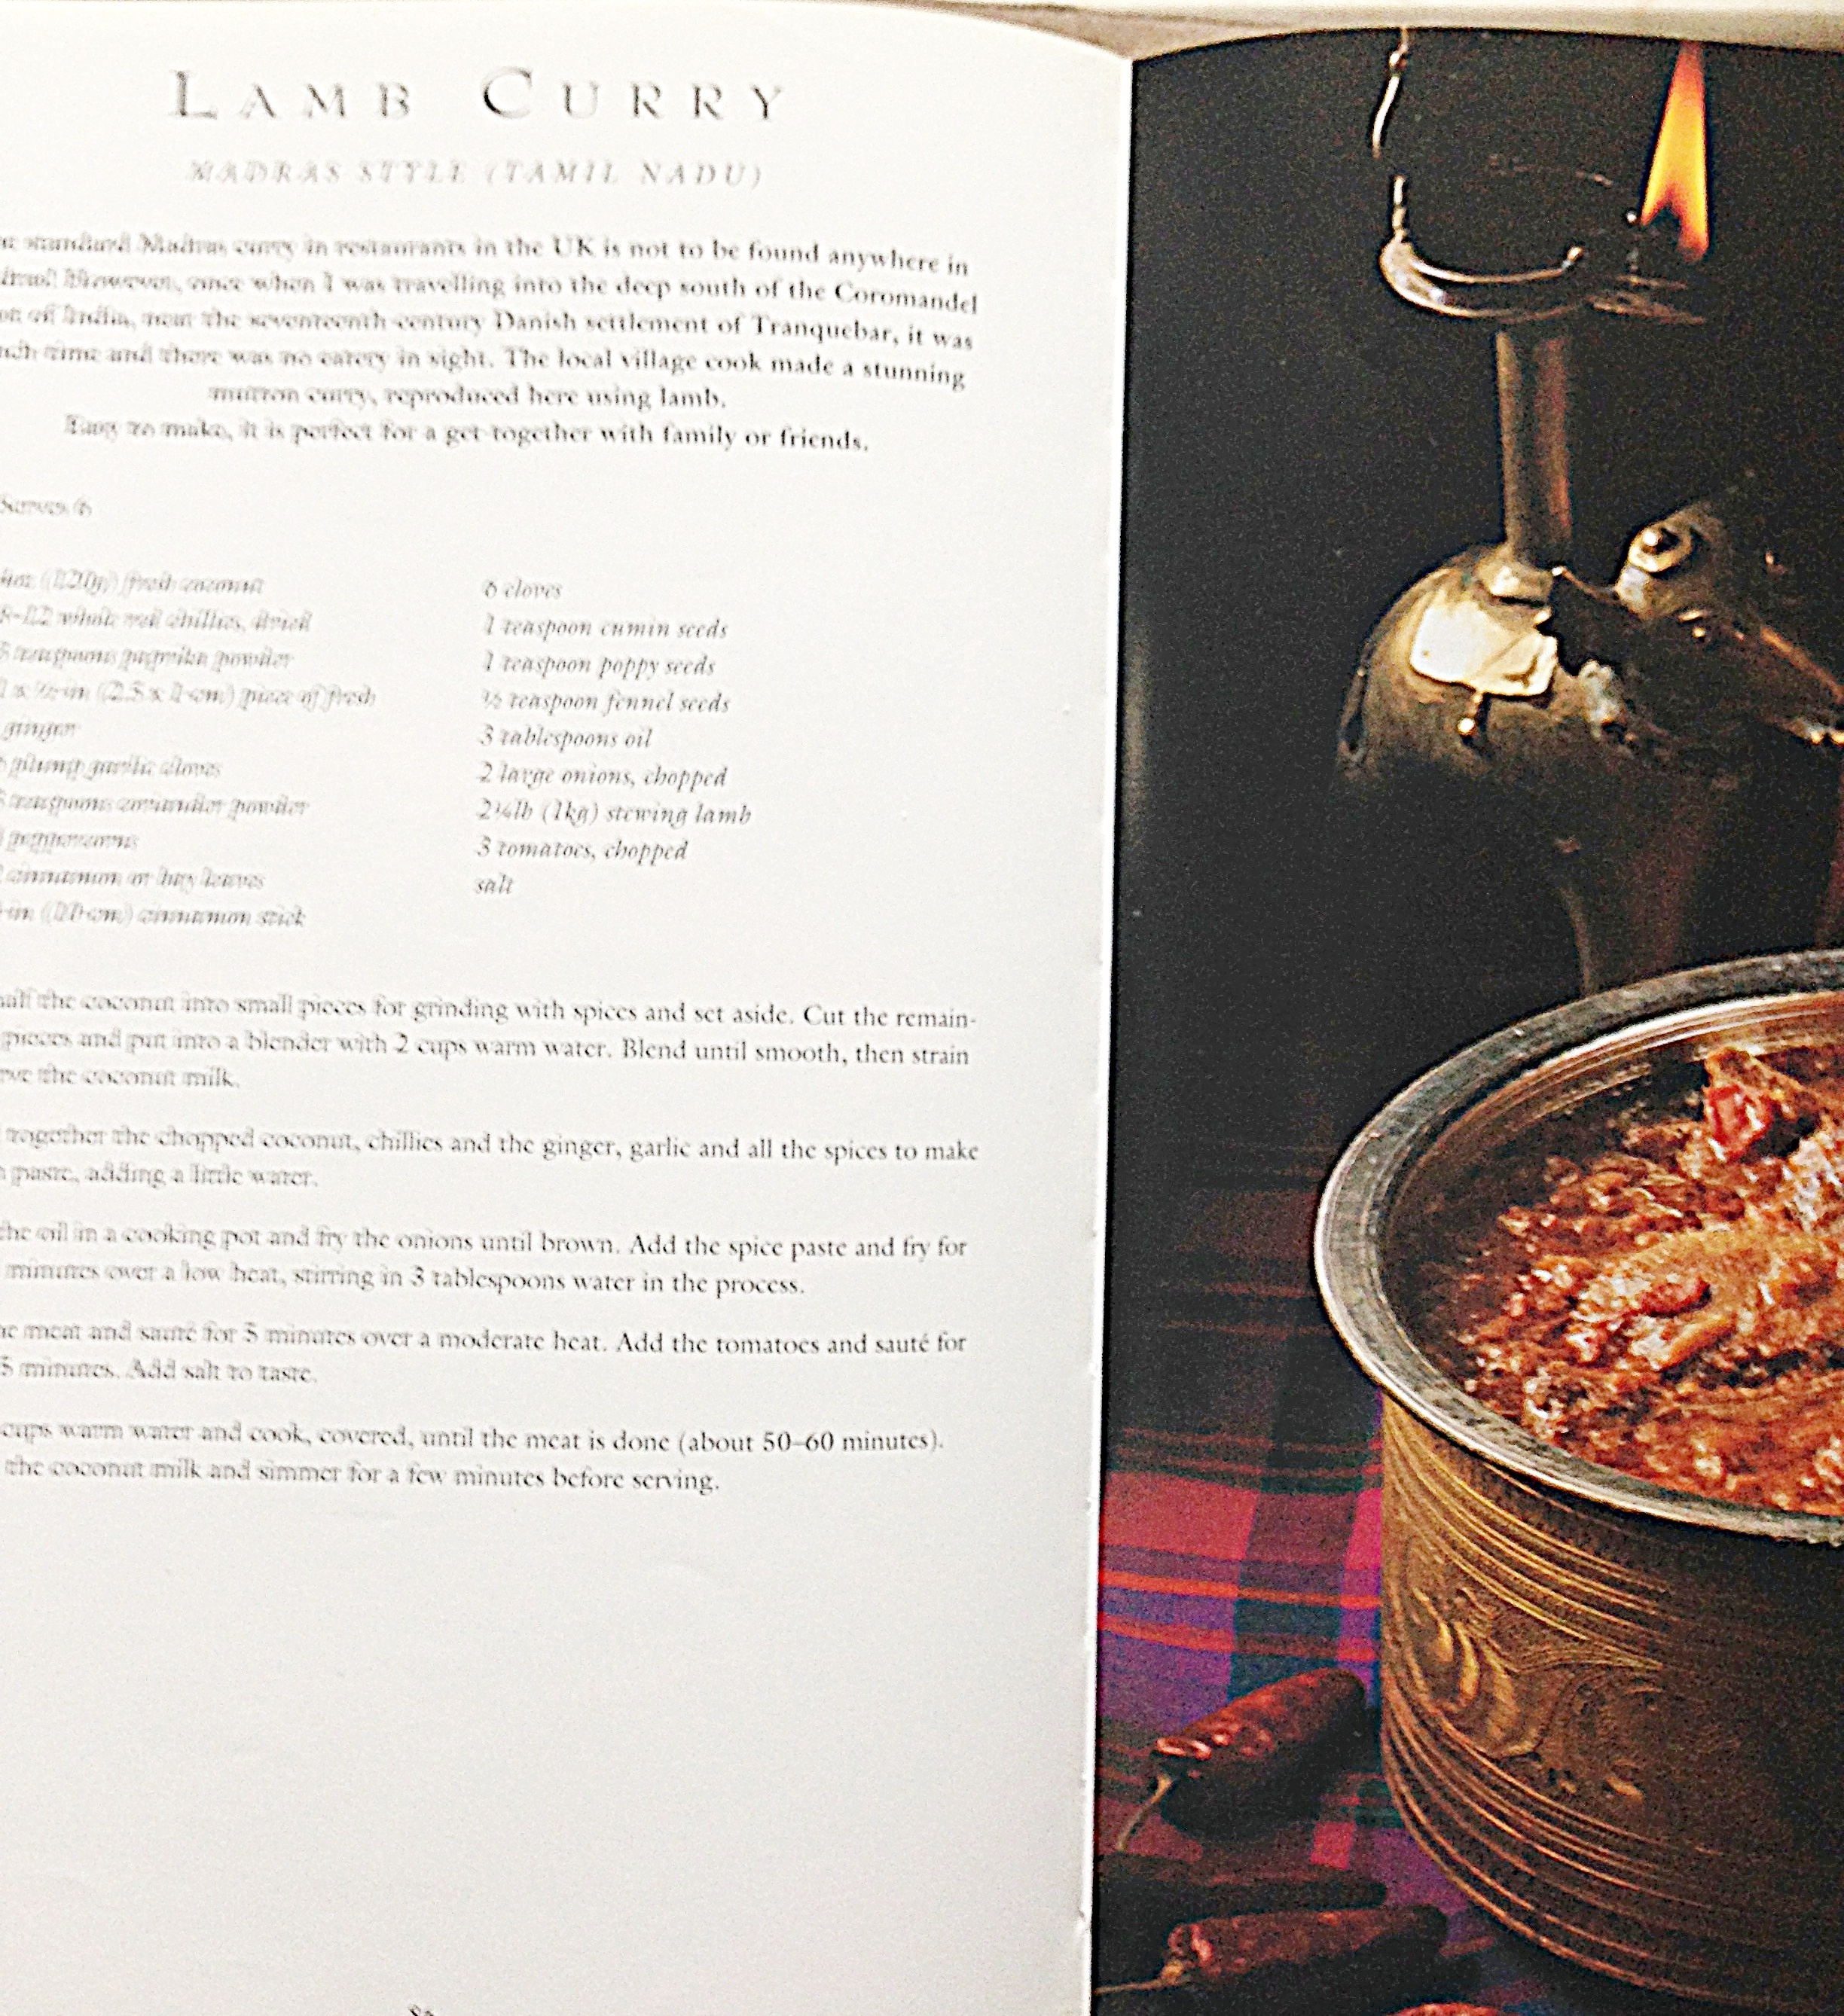 50 great curries of india cook book review and a recipe i have certainly acquired many a cookbooks over the yearshowever the 50 great indian curries has a coveted spot on my book shelfive cooked for family and forumfinder Gallery